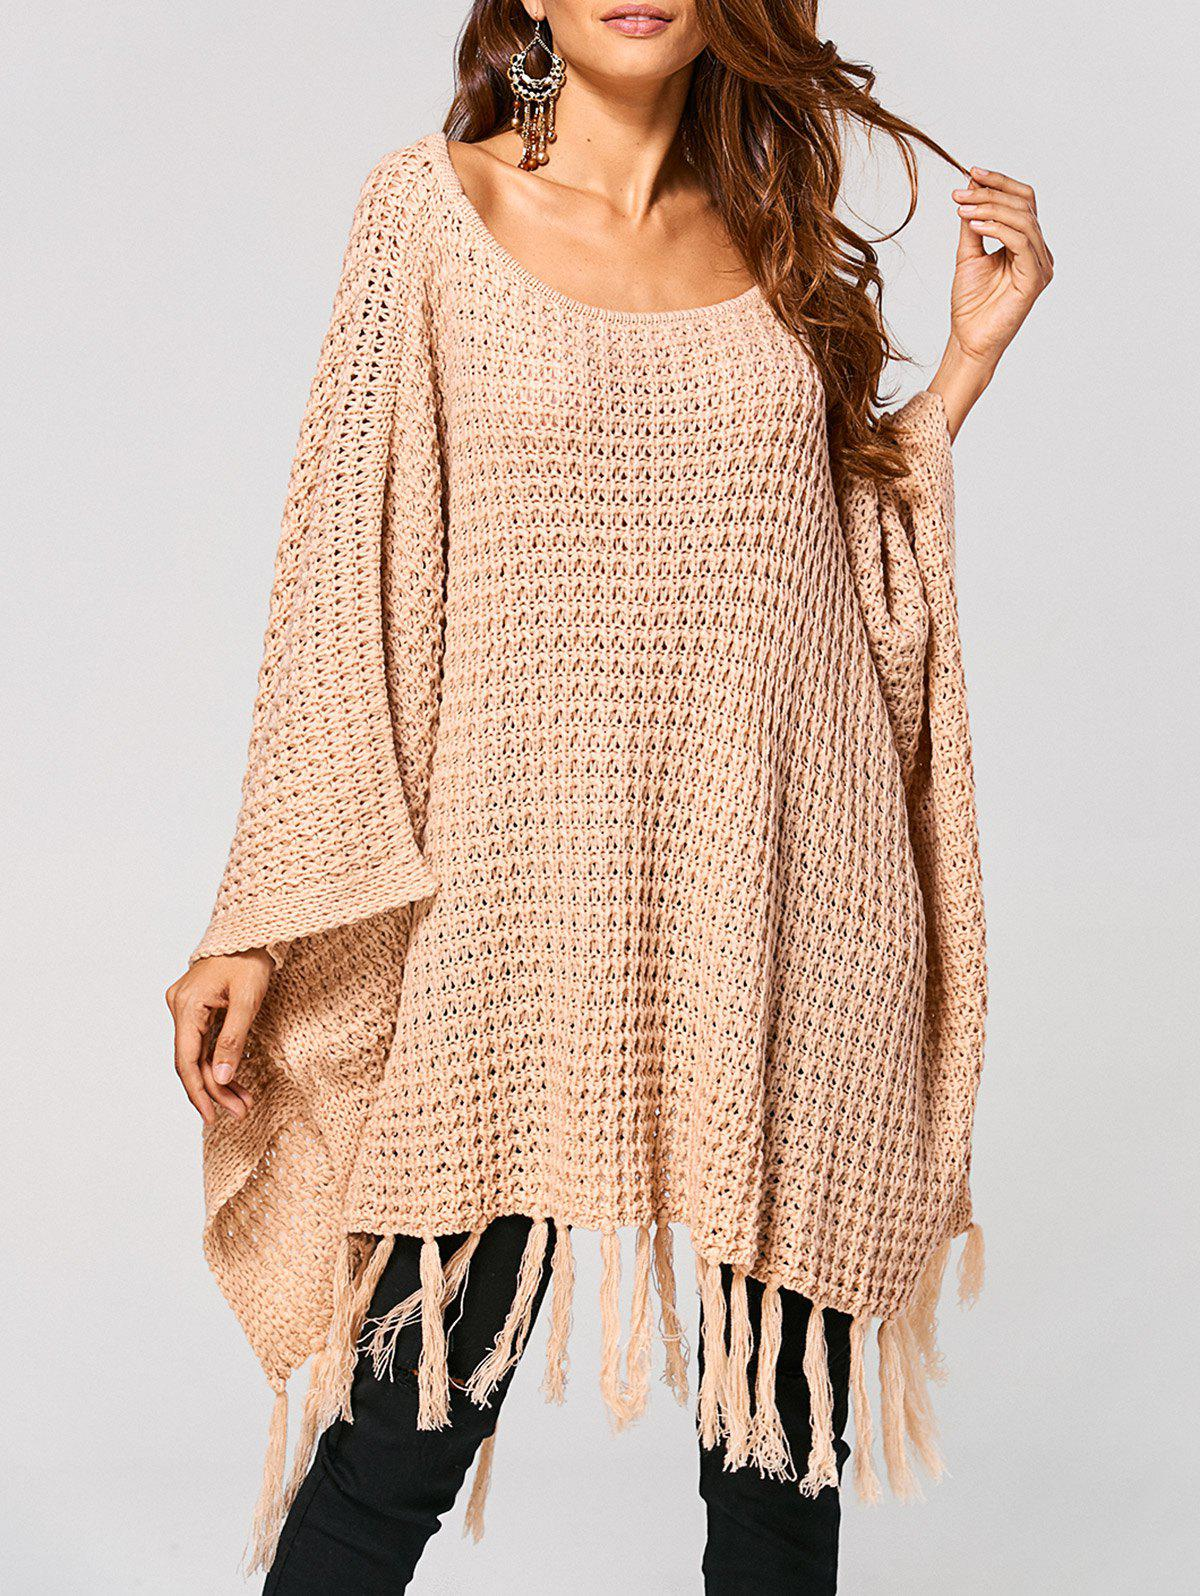 Shop Hollow Out Tassels Handkerchief Cape Sweater